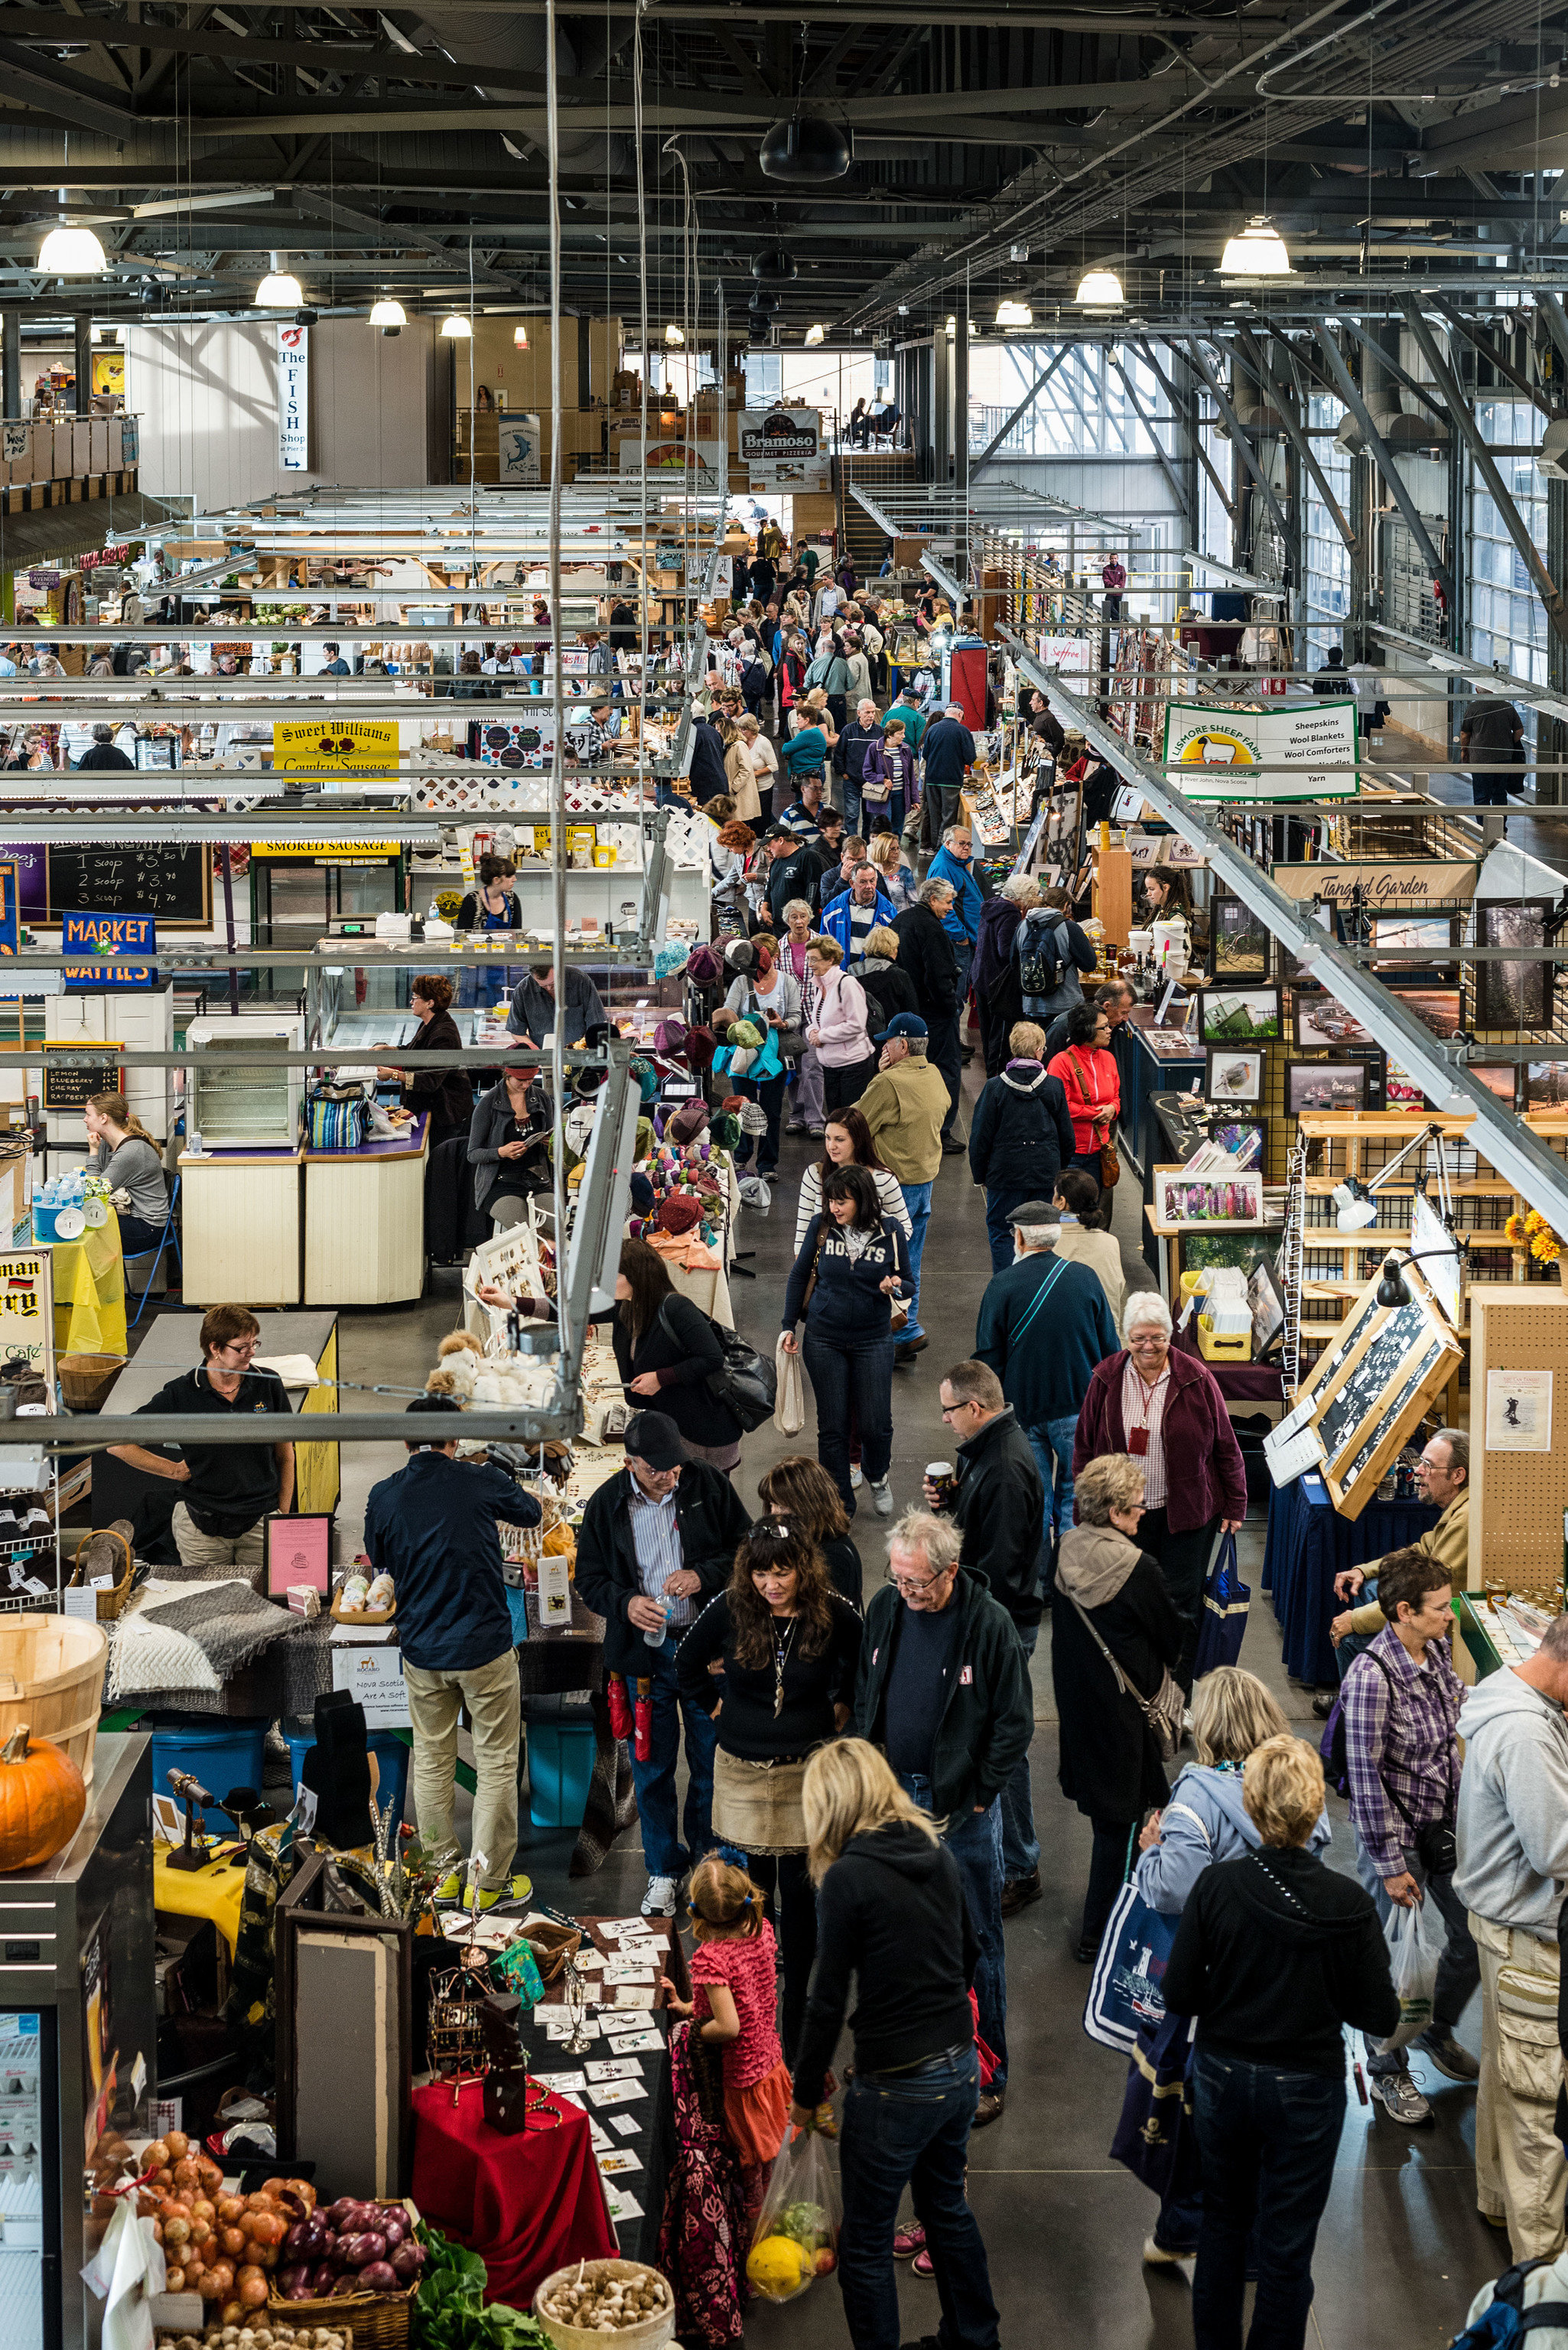 Trip Ideas person market marketplace indoor City public space human settlement supermarket vendor group bazaar people scene retail shopping flea market grocery store several crowd